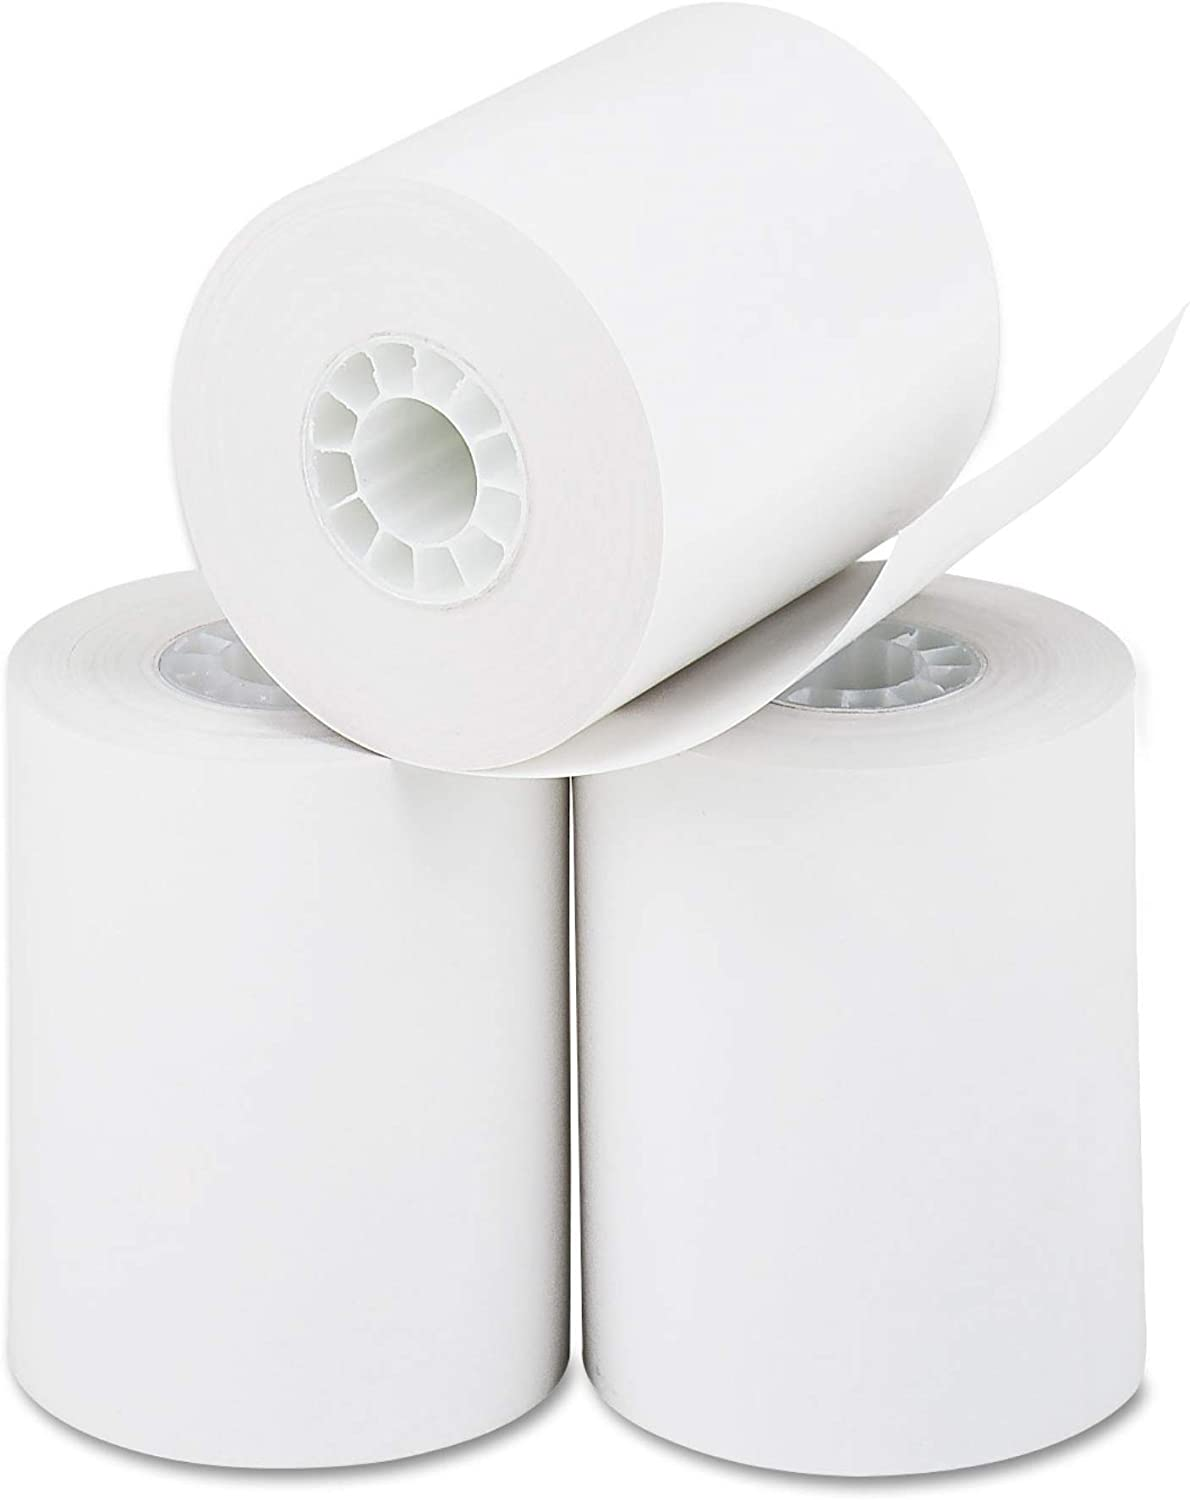 Iconex Max 71% 5 ☆ popular OFF 90780076 Direct Thermal Printing Rolls Paper 2.2